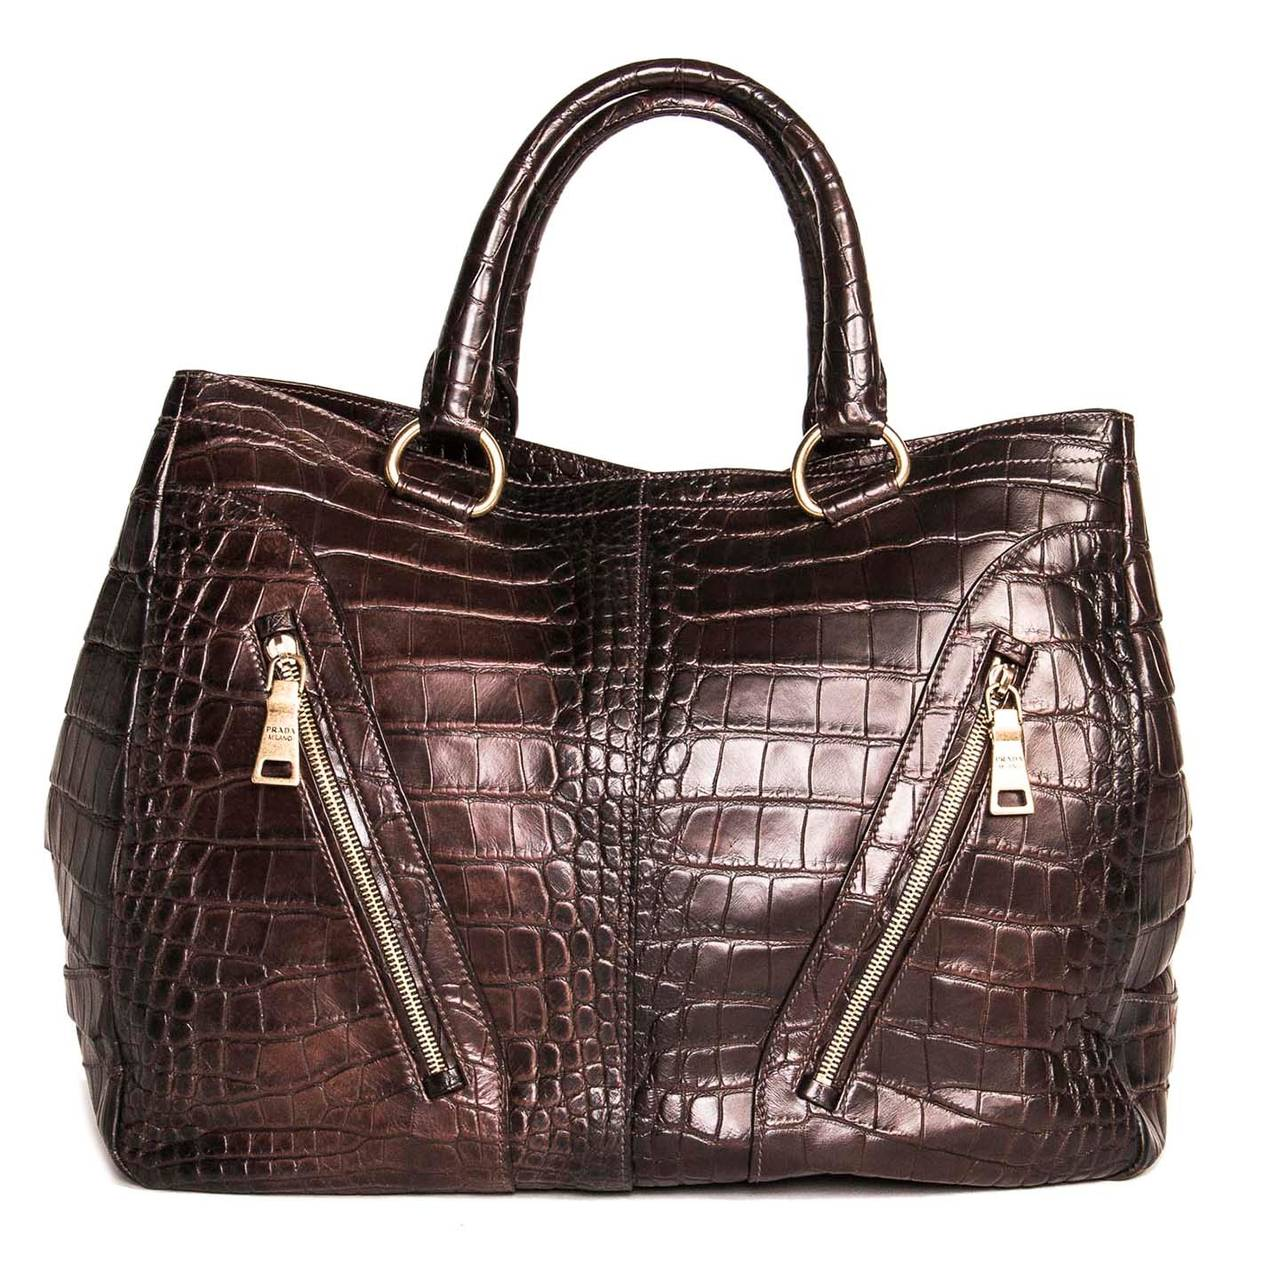 Prada Burgundy Crocodile Oversized Bag In Excellent Condition For Sale In Brooklyn, NY